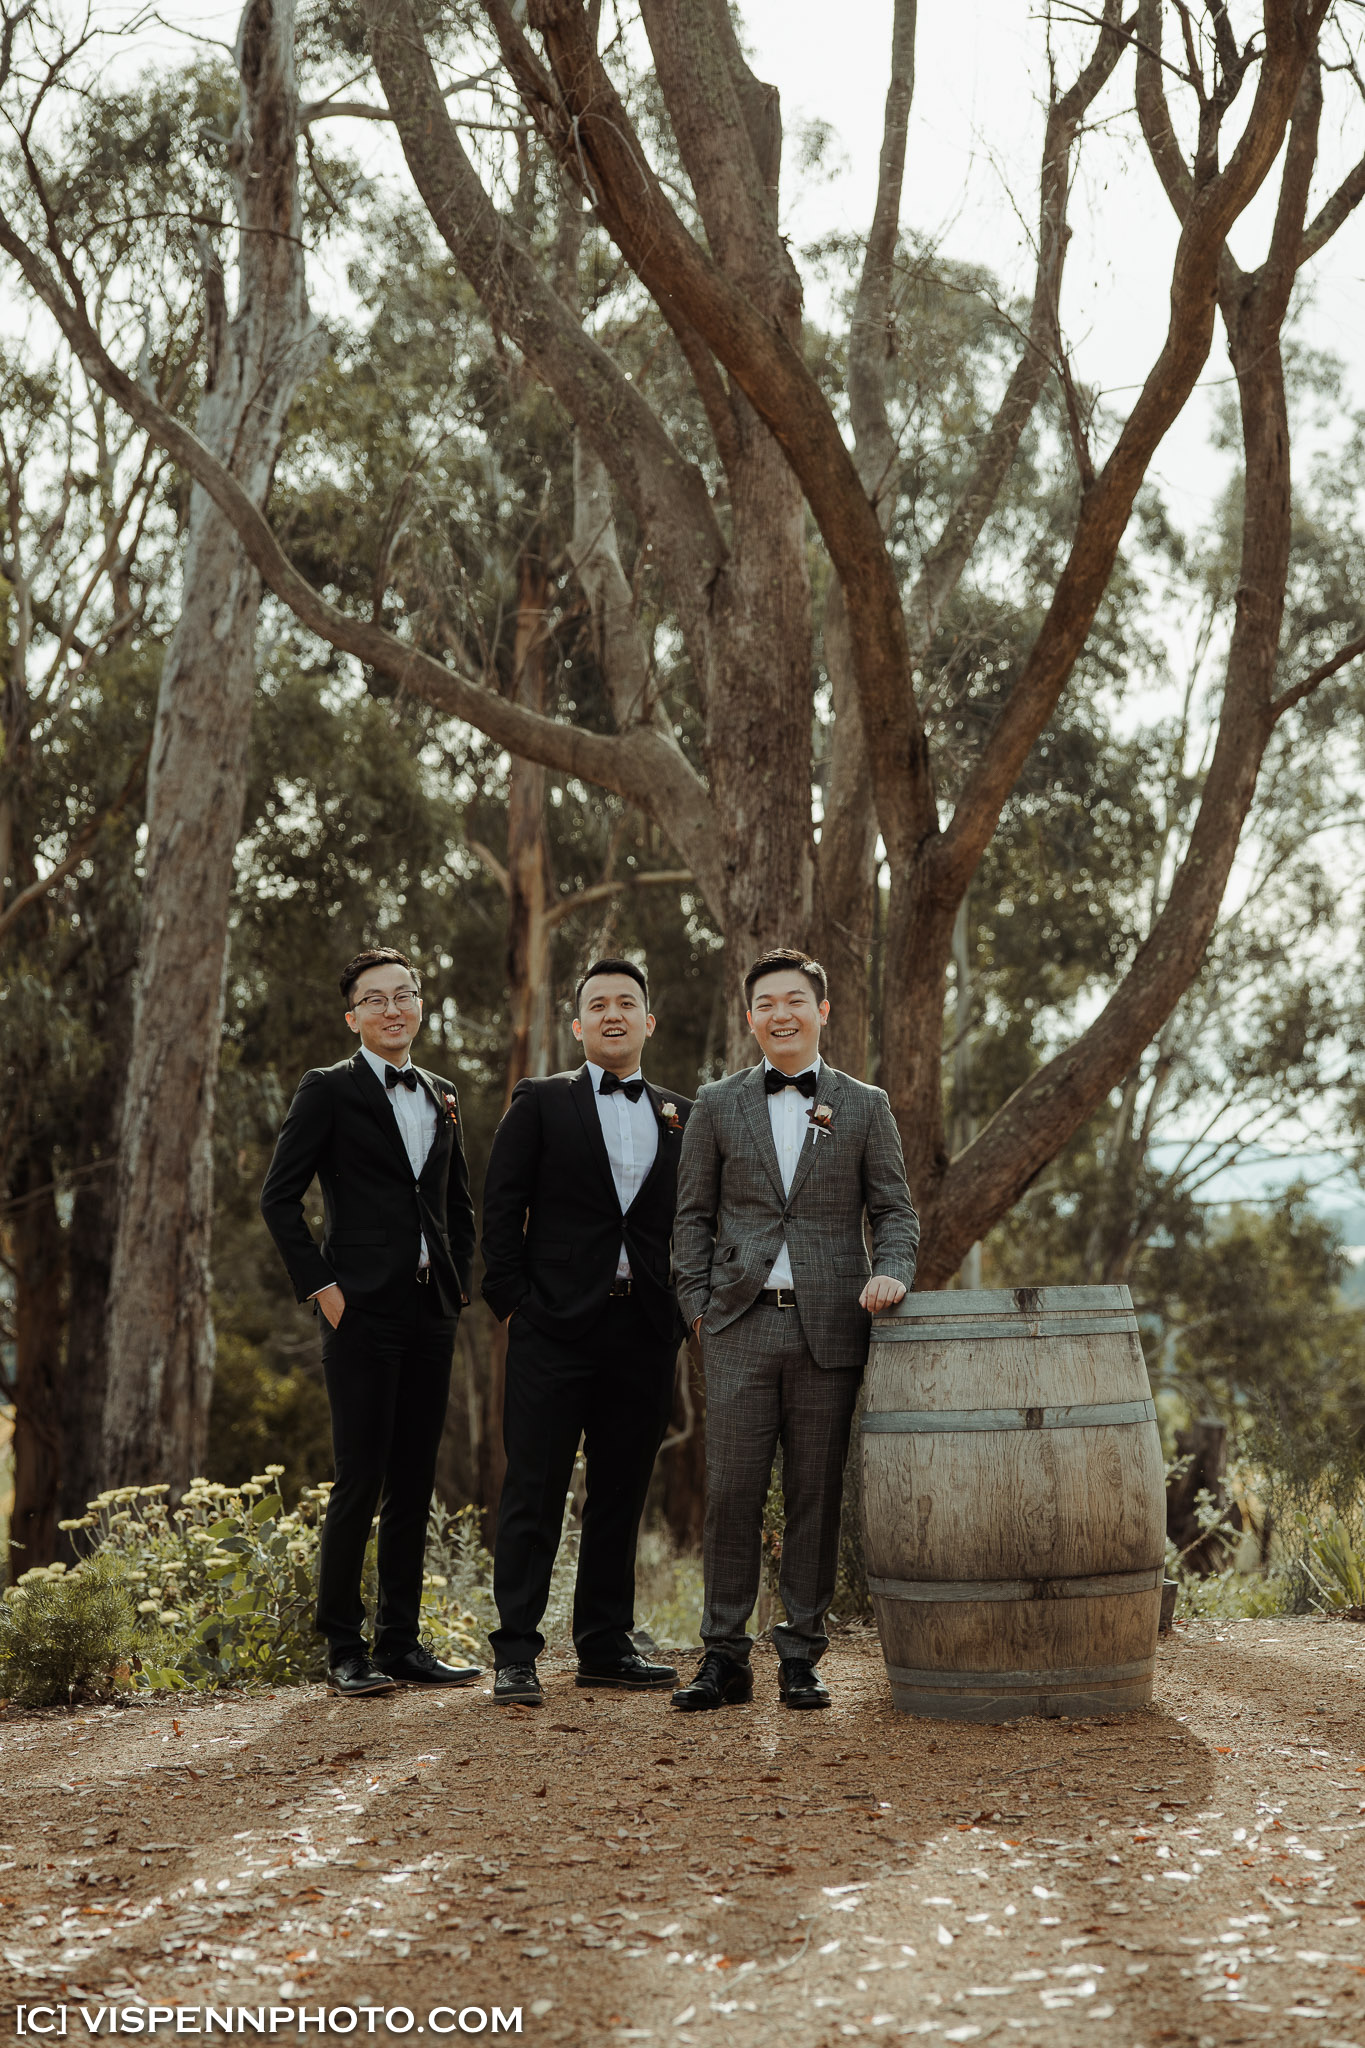 WEDDING DAY Photography Melbourne VISPENN 墨尔本 婚礼跟拍 婚礼摄像 婚礼摄影 结婚照 登记照 DominicHelen 1P 1937 EOSR VISPENN